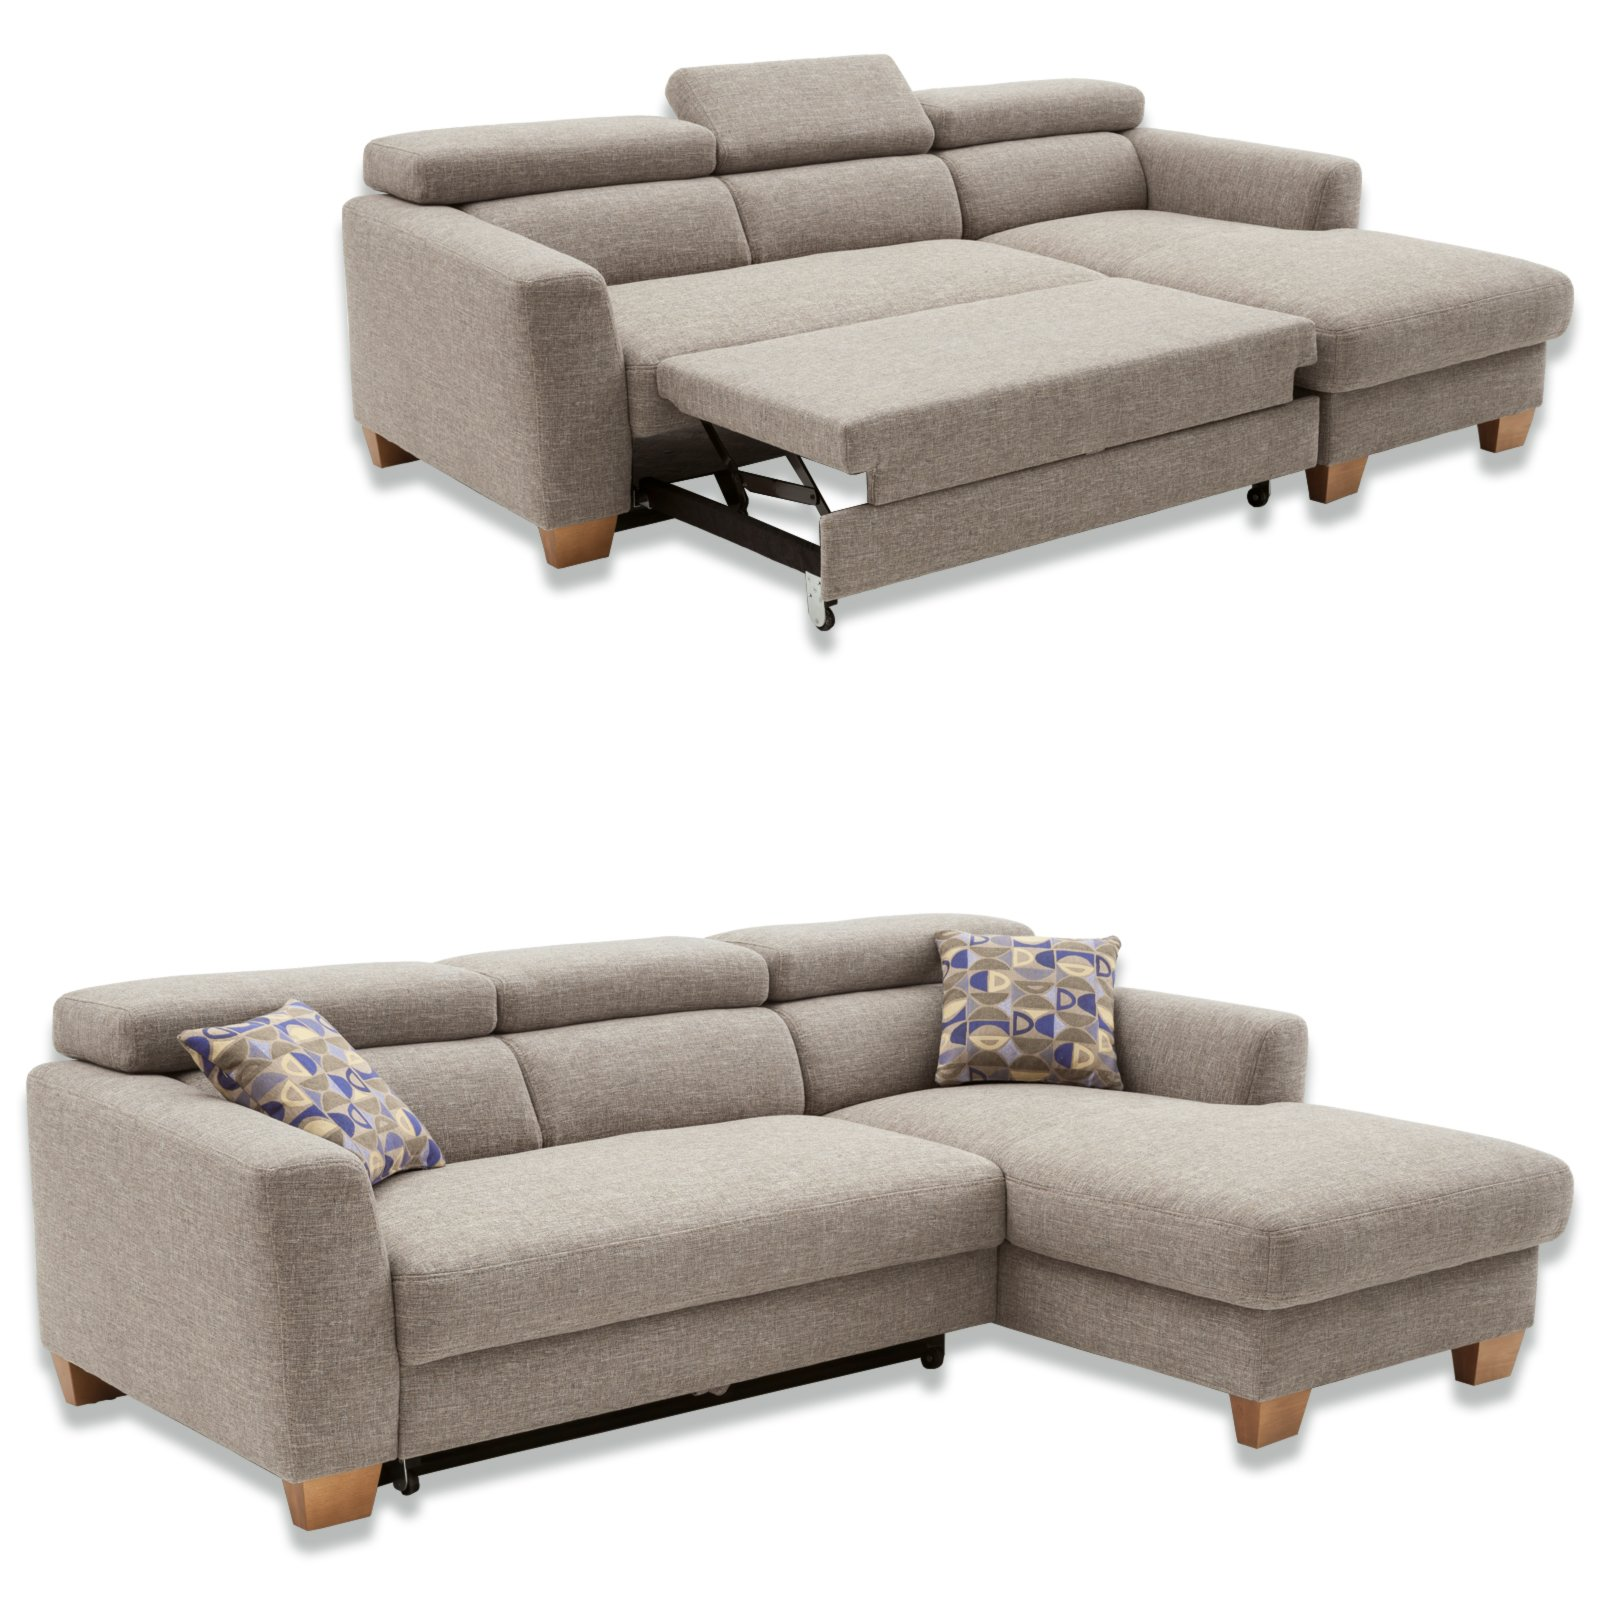 ecksofa grau beige recamiere rechts ecksofas l form sofas couches m bel roller. Black Bedroom Furniture Sets. Home Design Ideas